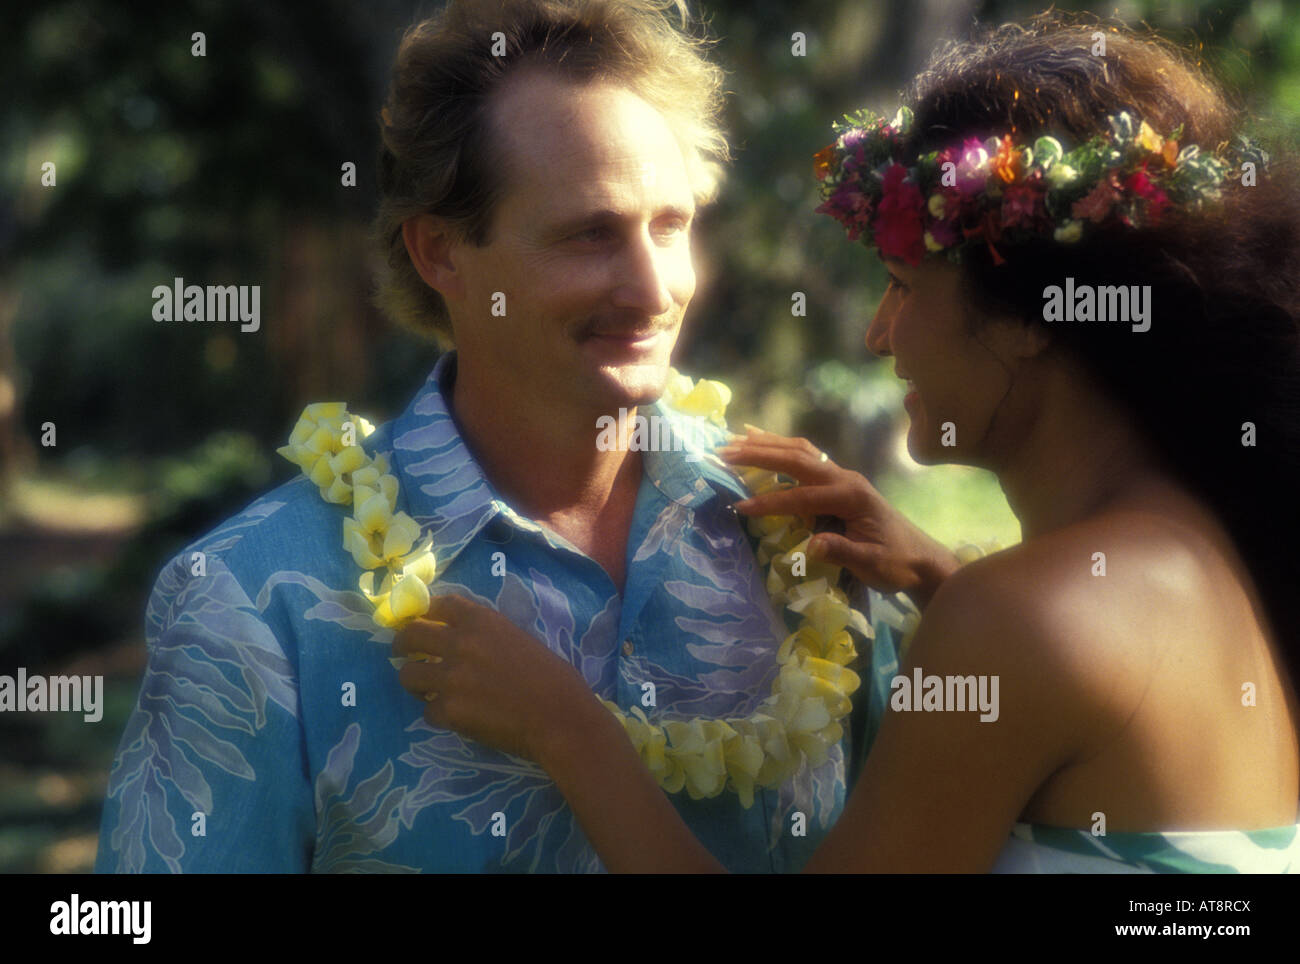 Tourist arriving to hawaii receiving a plumeria lei greeting from an tourist arriving to hawaii receiving a plumeria lei greeting from an island woman m4hsunfo